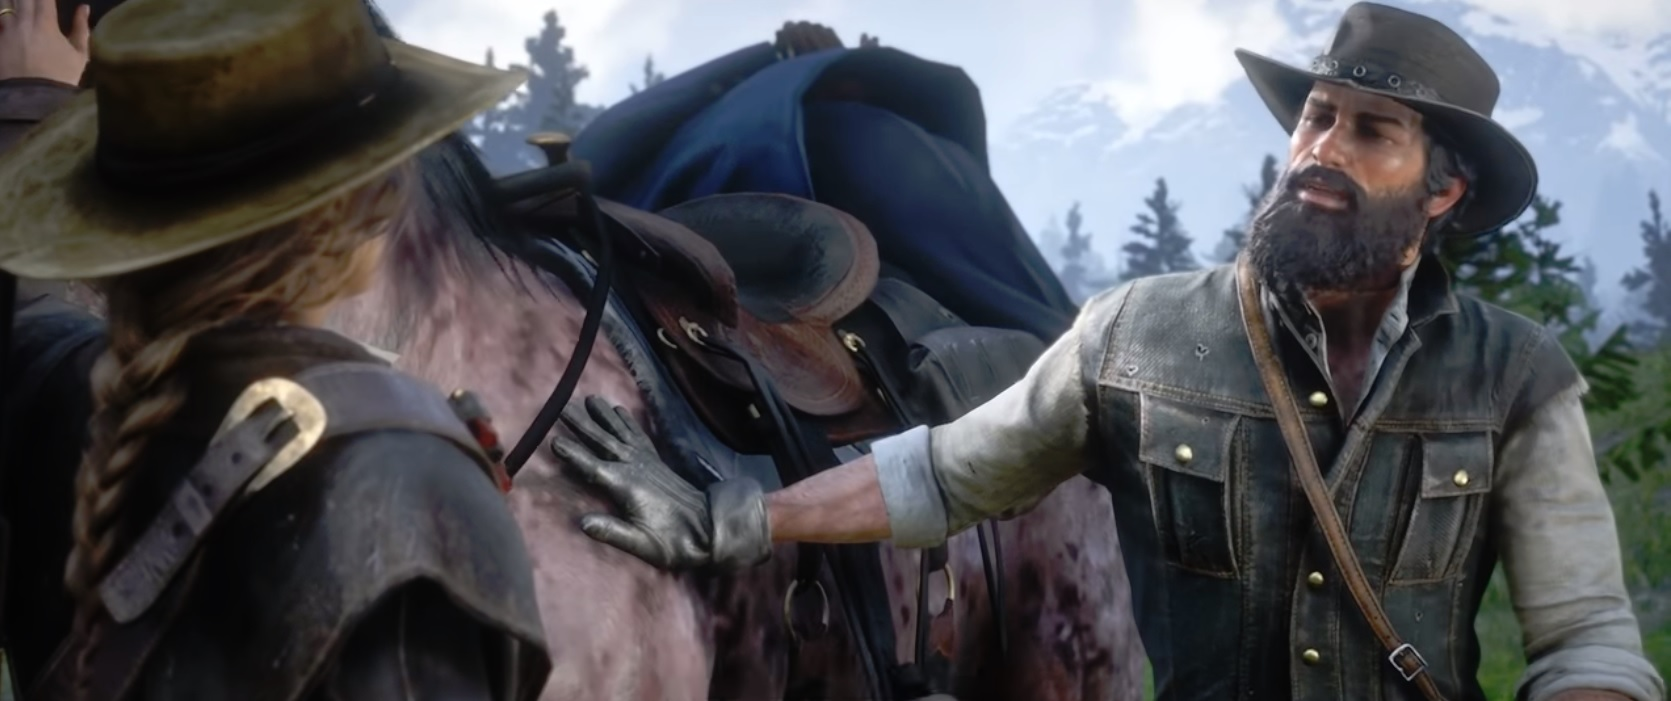 Red Dead Redemption 2 Spoilers Faq Endings Deaths And More Usgamer